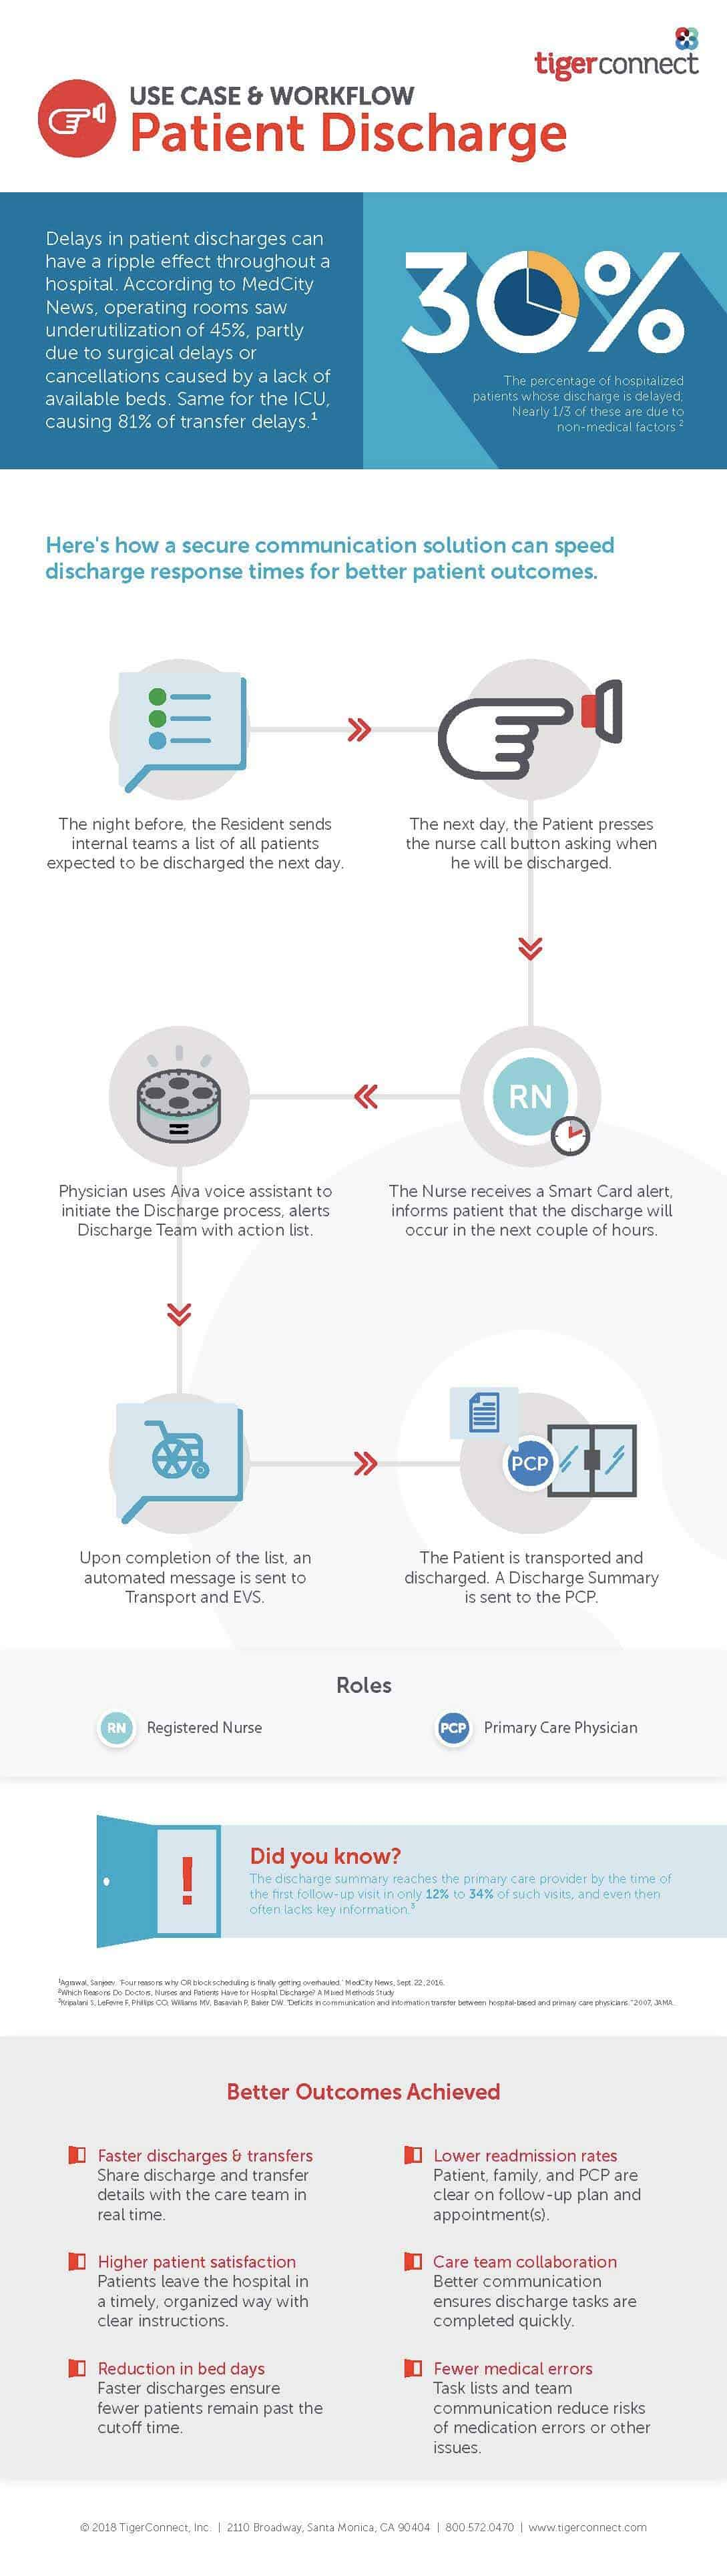 Patient Discharge: Use Case & Workflow | Infographic | TigerConnect